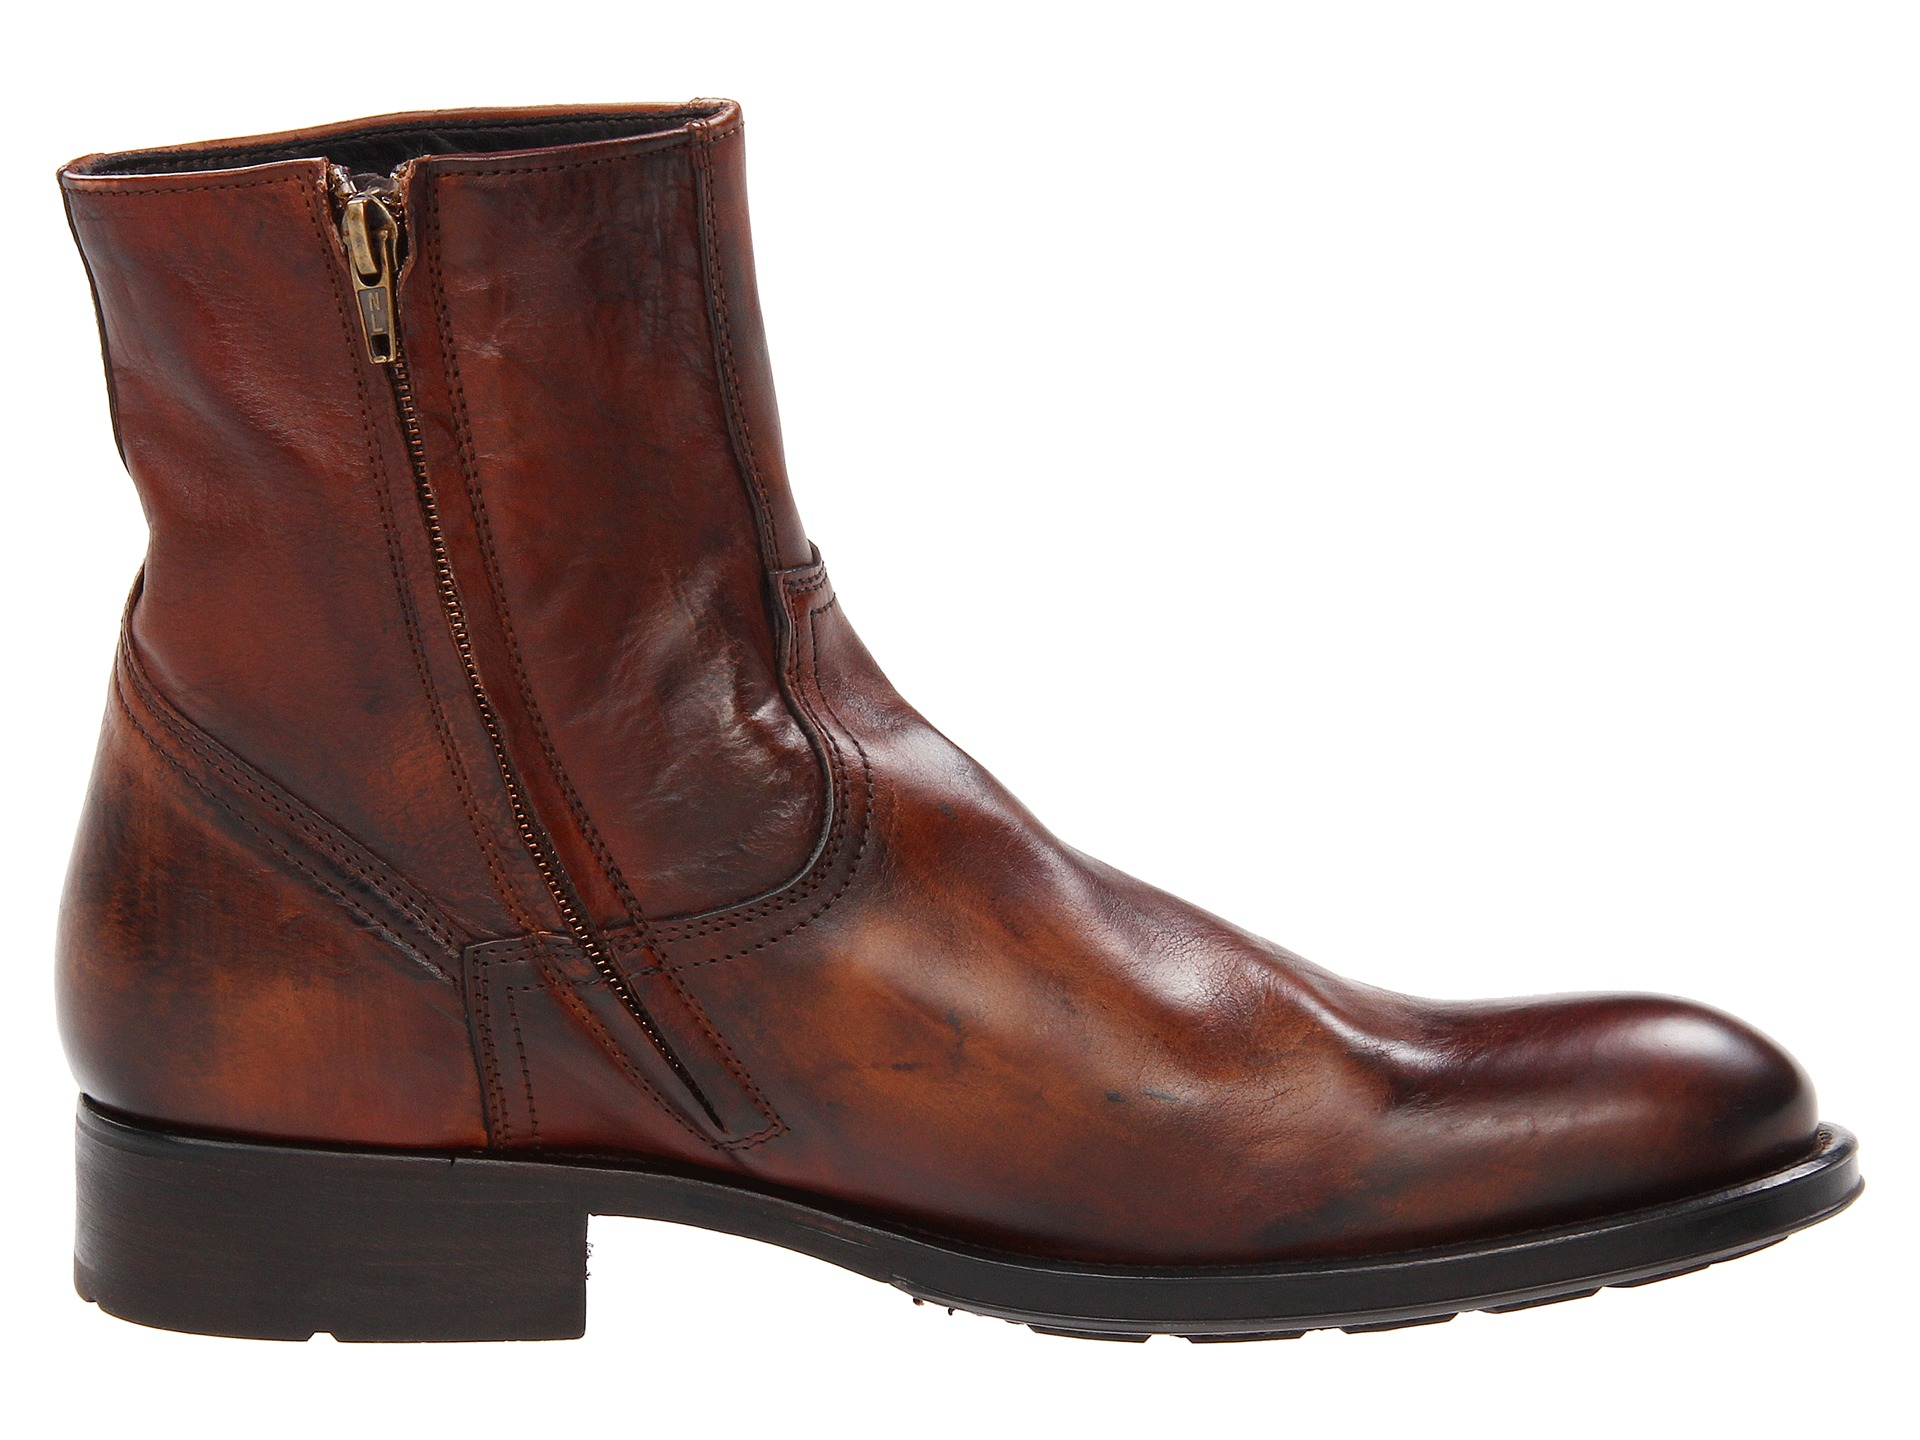 to boot new york hawthorne zappos free shipping both